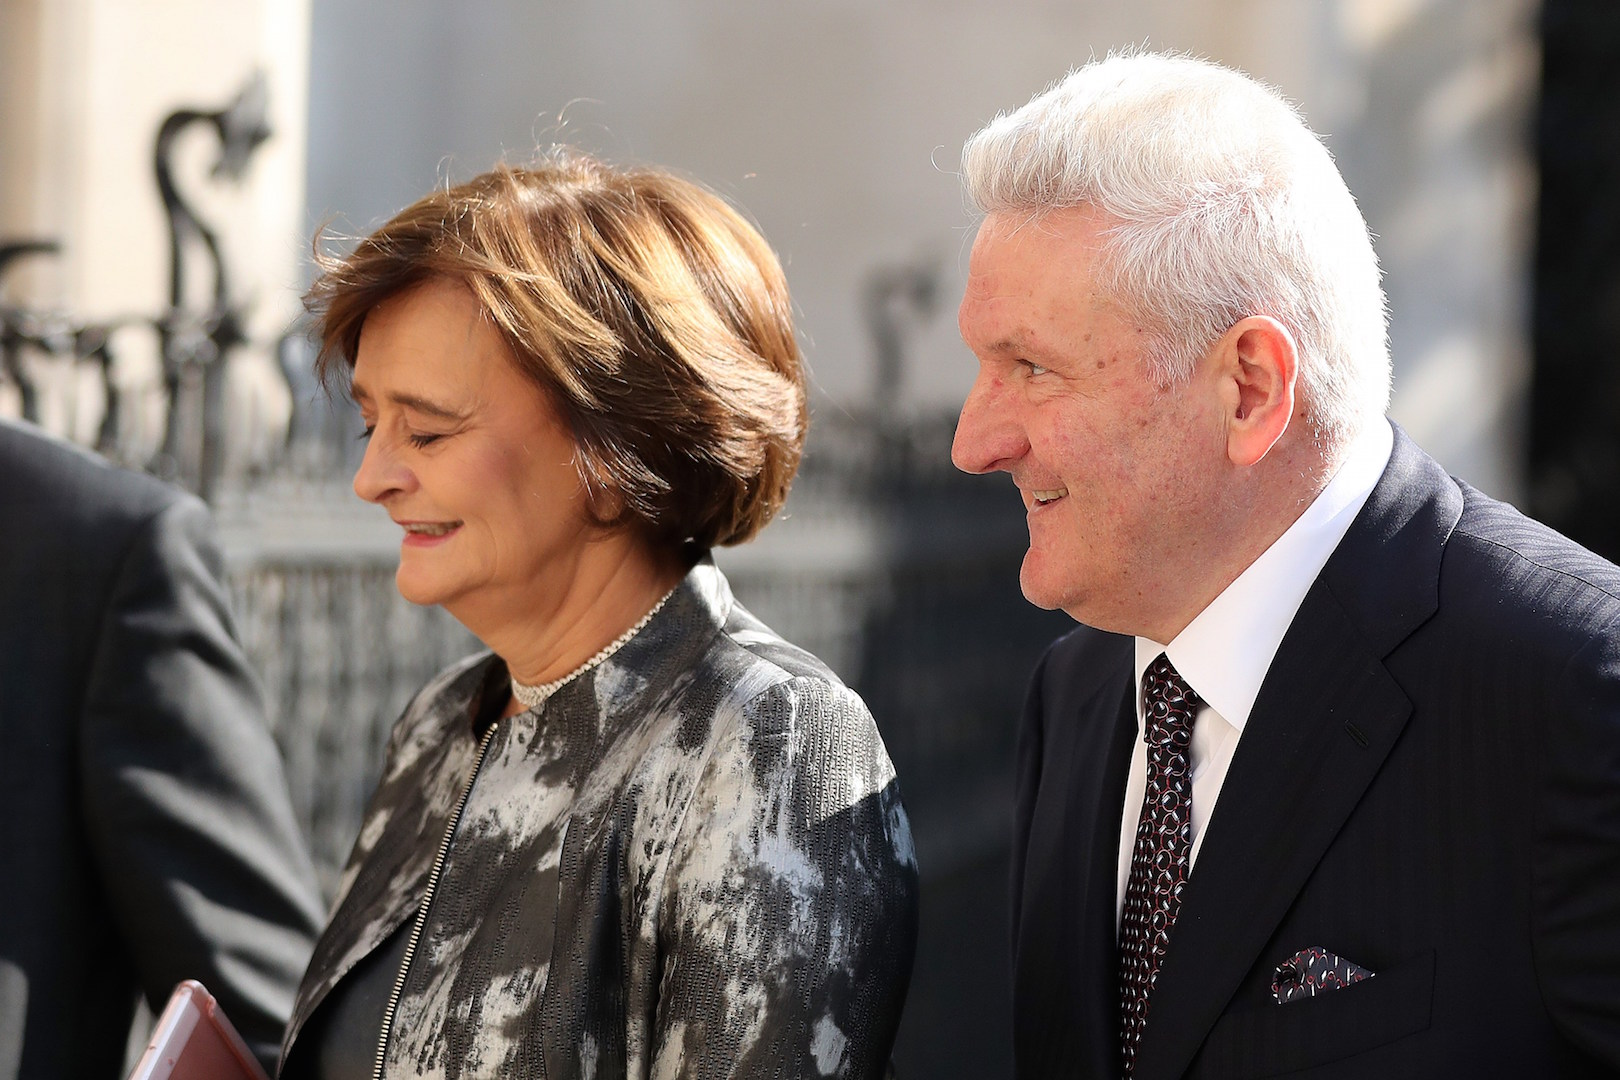 Agrokor's Todorić: Will he be extradited to Croatia or not?